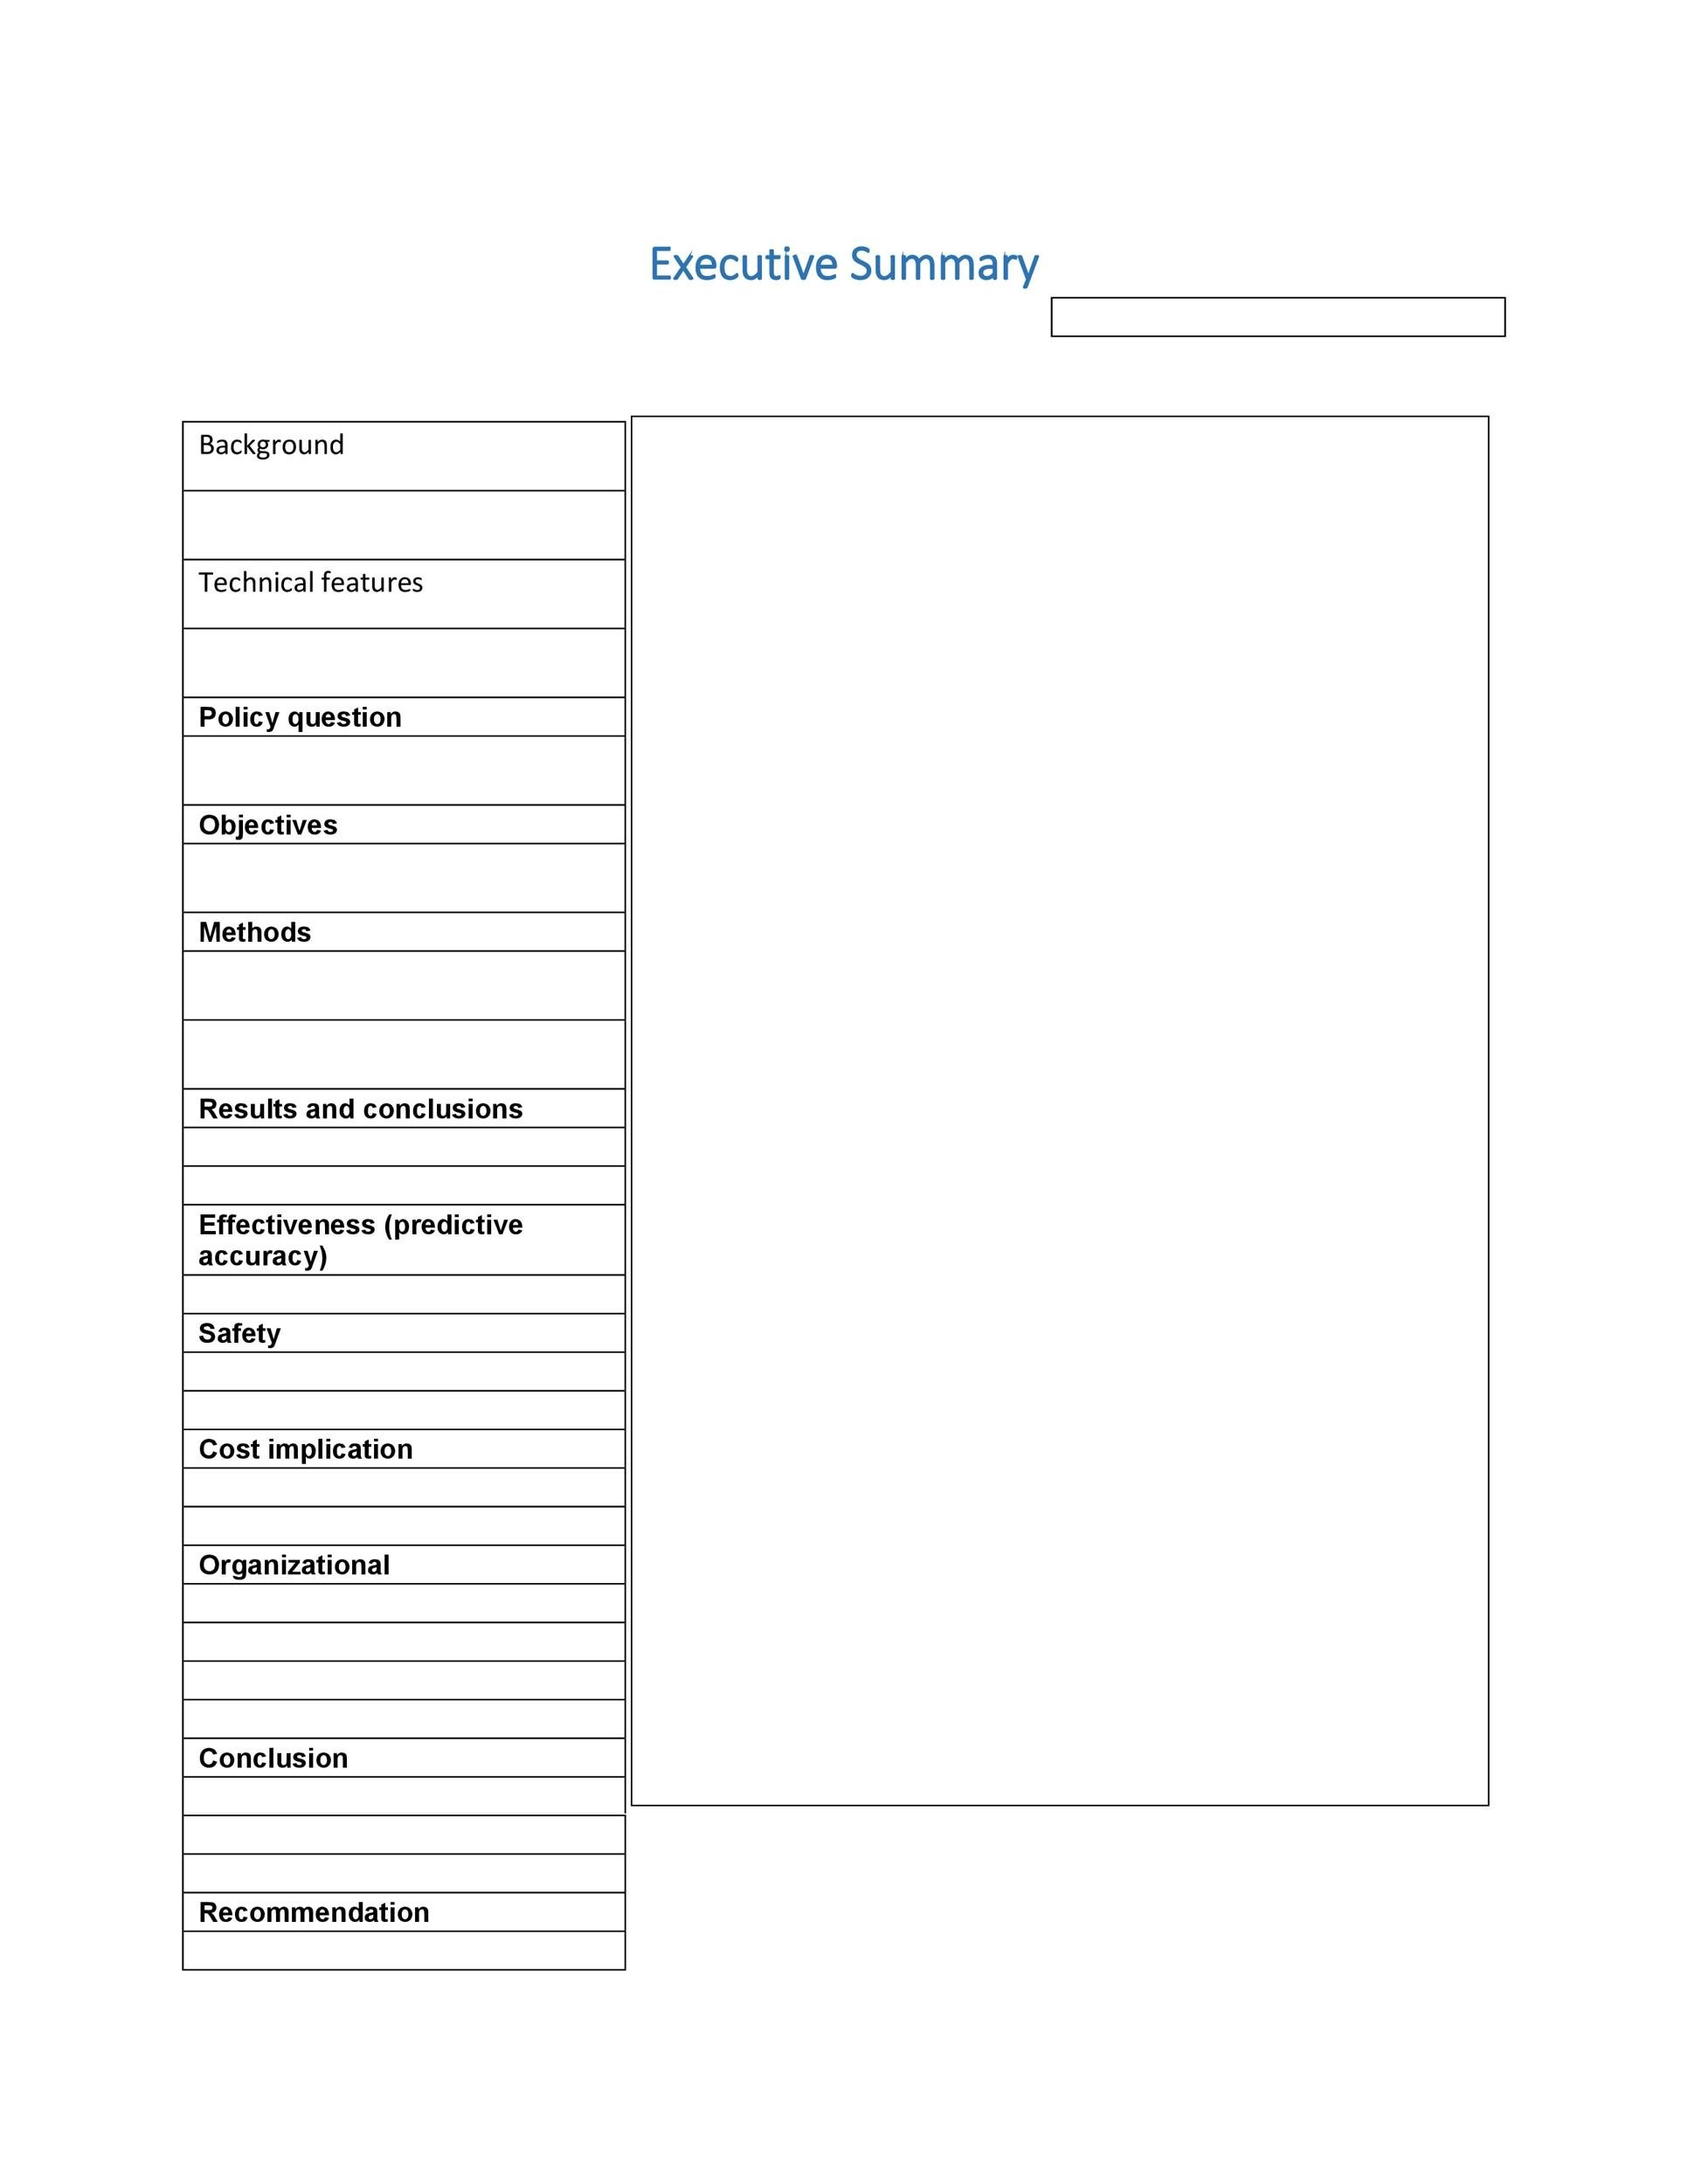 Executive Summary Template 20